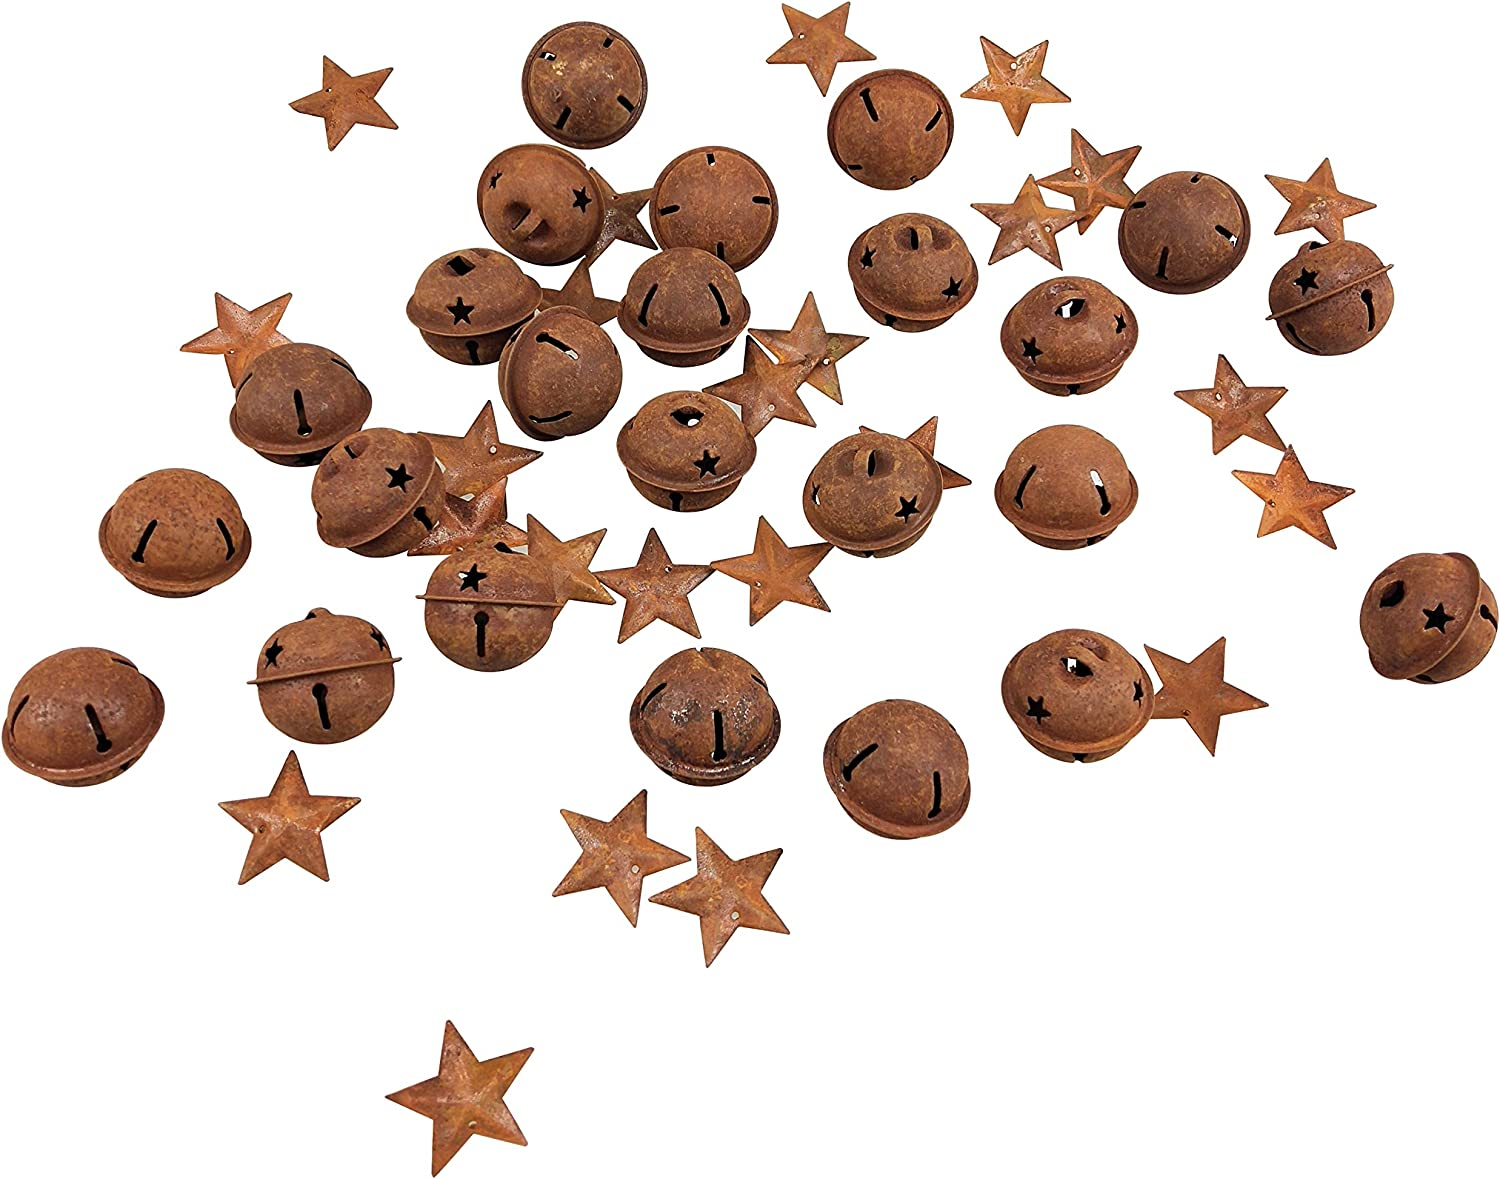 24 Pcs Rusty Craft Jingle Bells with Star Shaped Cutouts and 24 pcs Rusty Stars with a Hollow for Christmas Holiday Home Party Decor